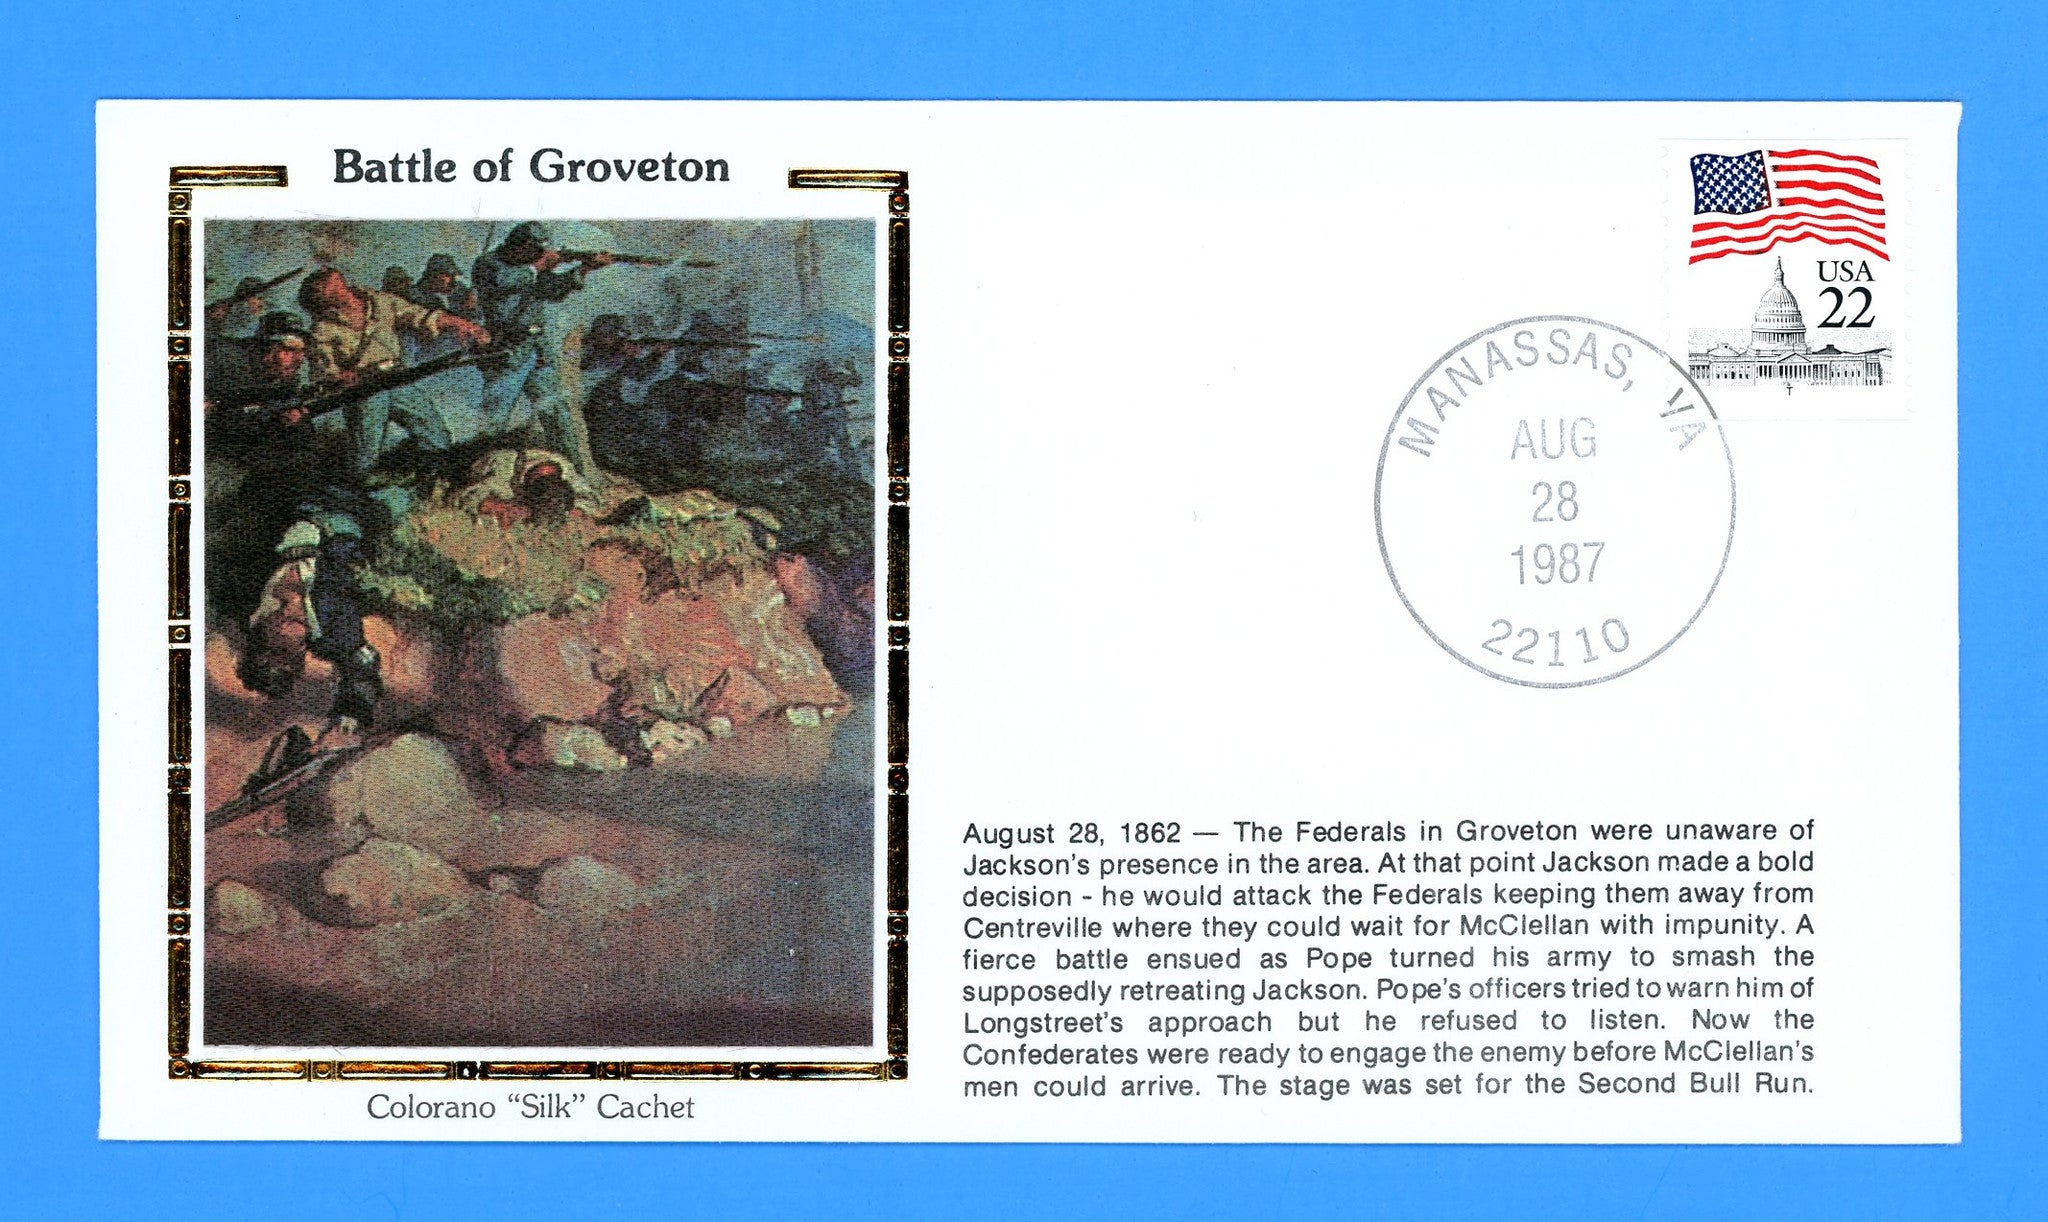 Civil War Battle of Groveton Anniversary August 28, 1987 by Colorano